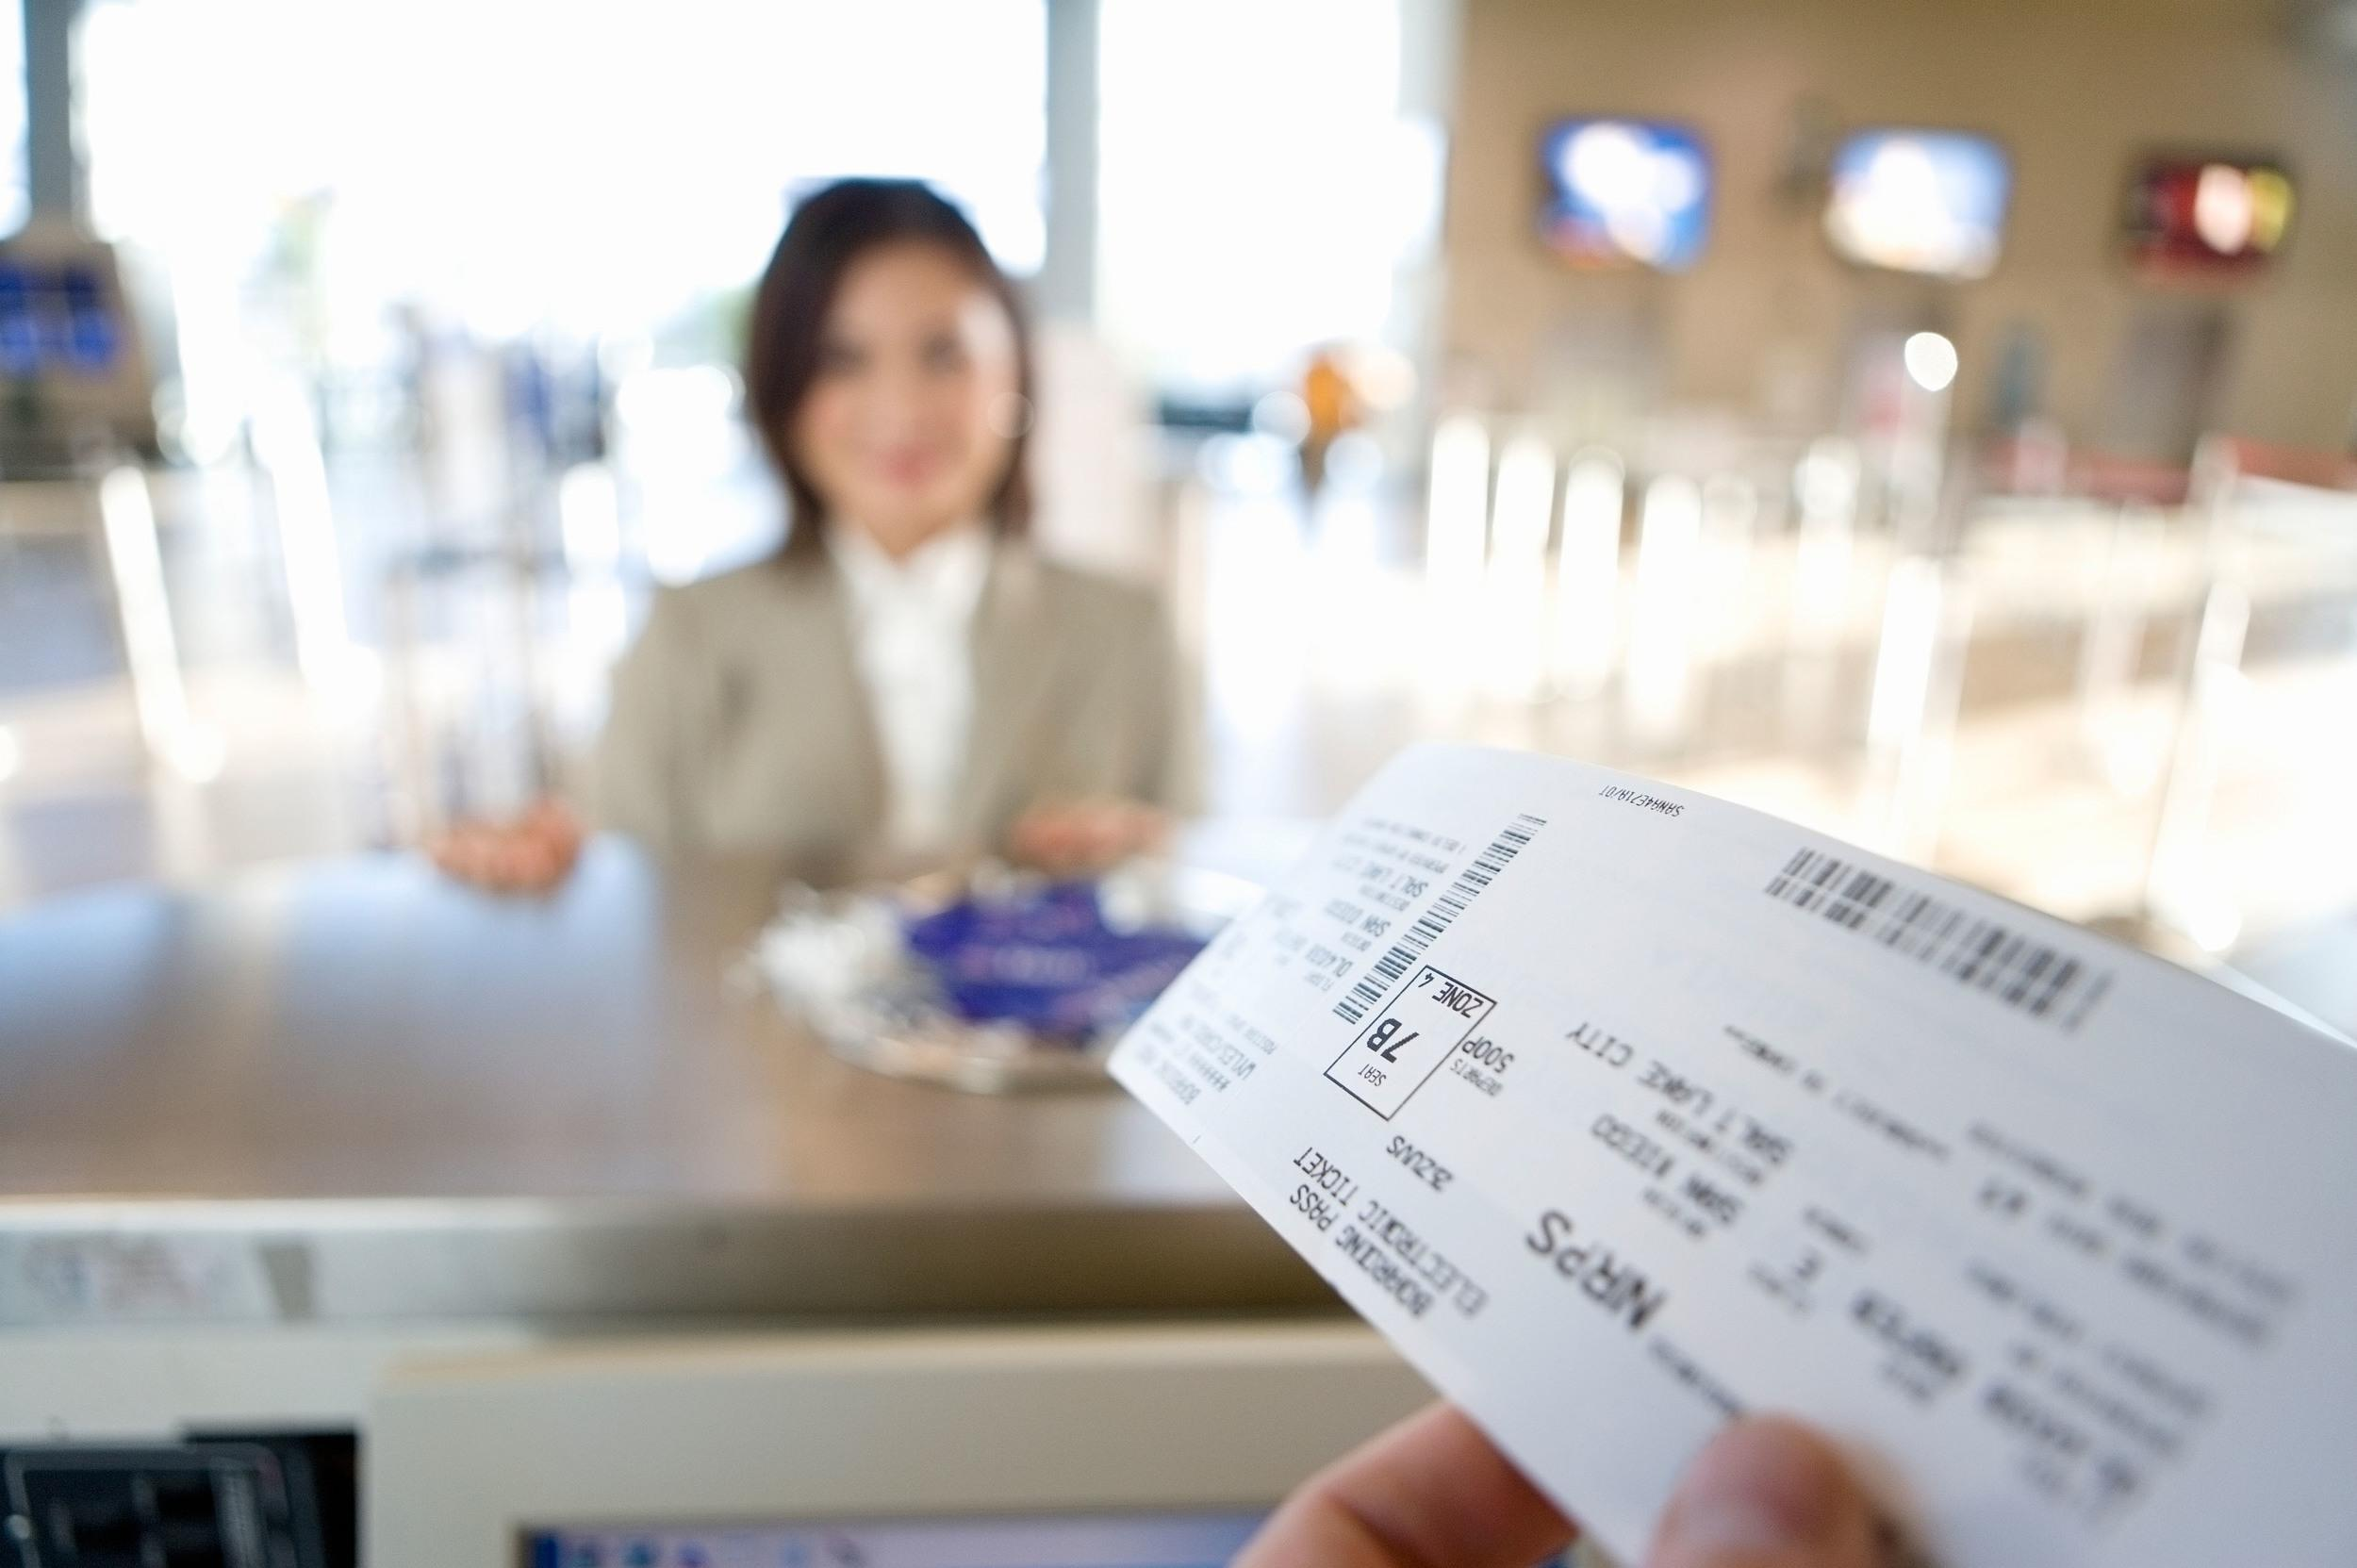 """<p>If you've successfully checked in online at home, you'd do well to remember to print your boarding pass if travelling with <a href=""""https://www.ryanair.com/gb/en/useful-info/help-centre/fees"""" target=""""_blank"""">Ryanair</a> as the airline charges a Boarding Card Reissue Fee of £15. Similarly, <a href=""""http://www.jet2.com/faqs/check-in-mobile/#gsc.tab=0"""" target=""""_blank"""">Jet2.com</a> has a £17.50 administration fee for passengers who are unable to print or lose their boarding cards.</p>"""